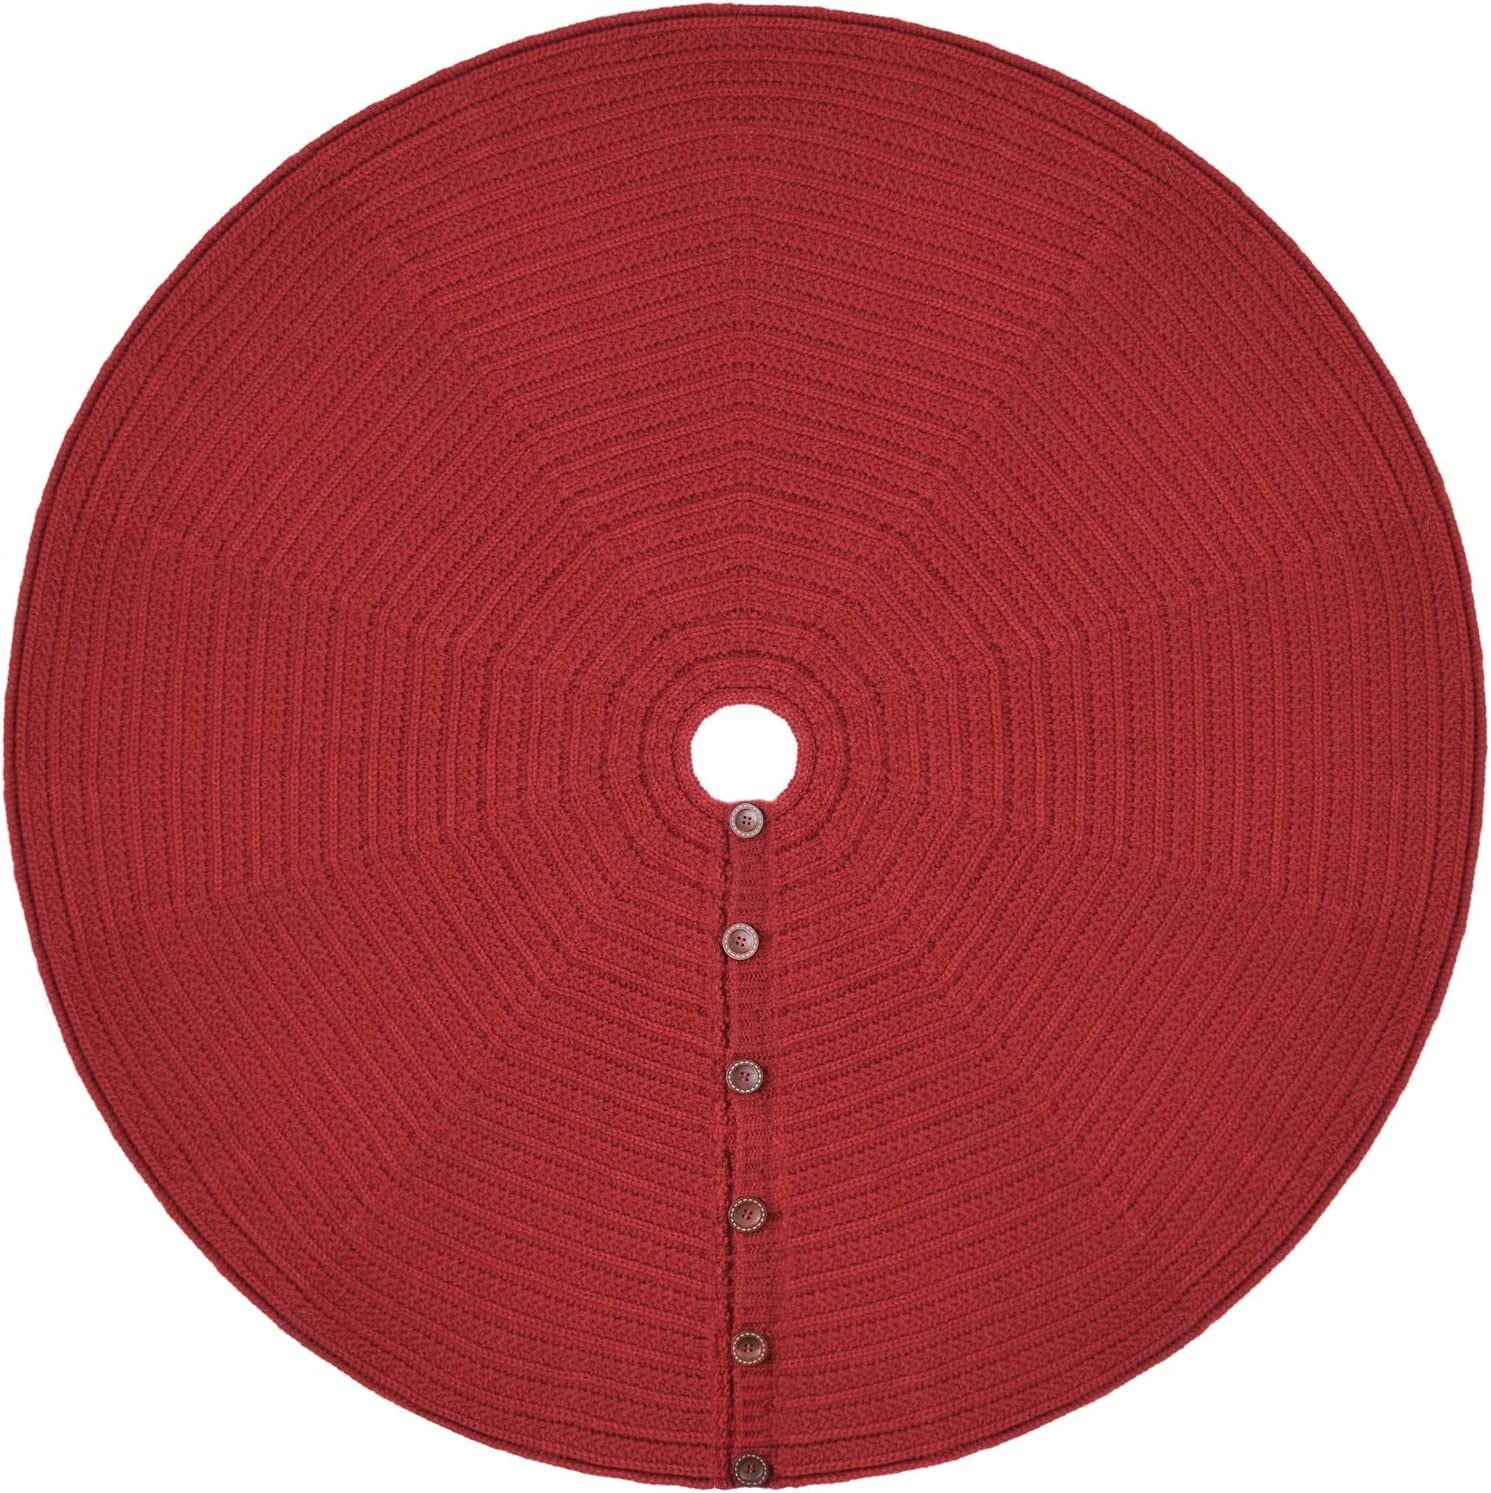 Ruby Red Starry Dynamo 48-Inch Knit Christmas Tree Skirt Hand-Knitted Xmas Home Holiday Decor with 4-Inch Center Hole and 6 Wood Button-and-Loop Closure